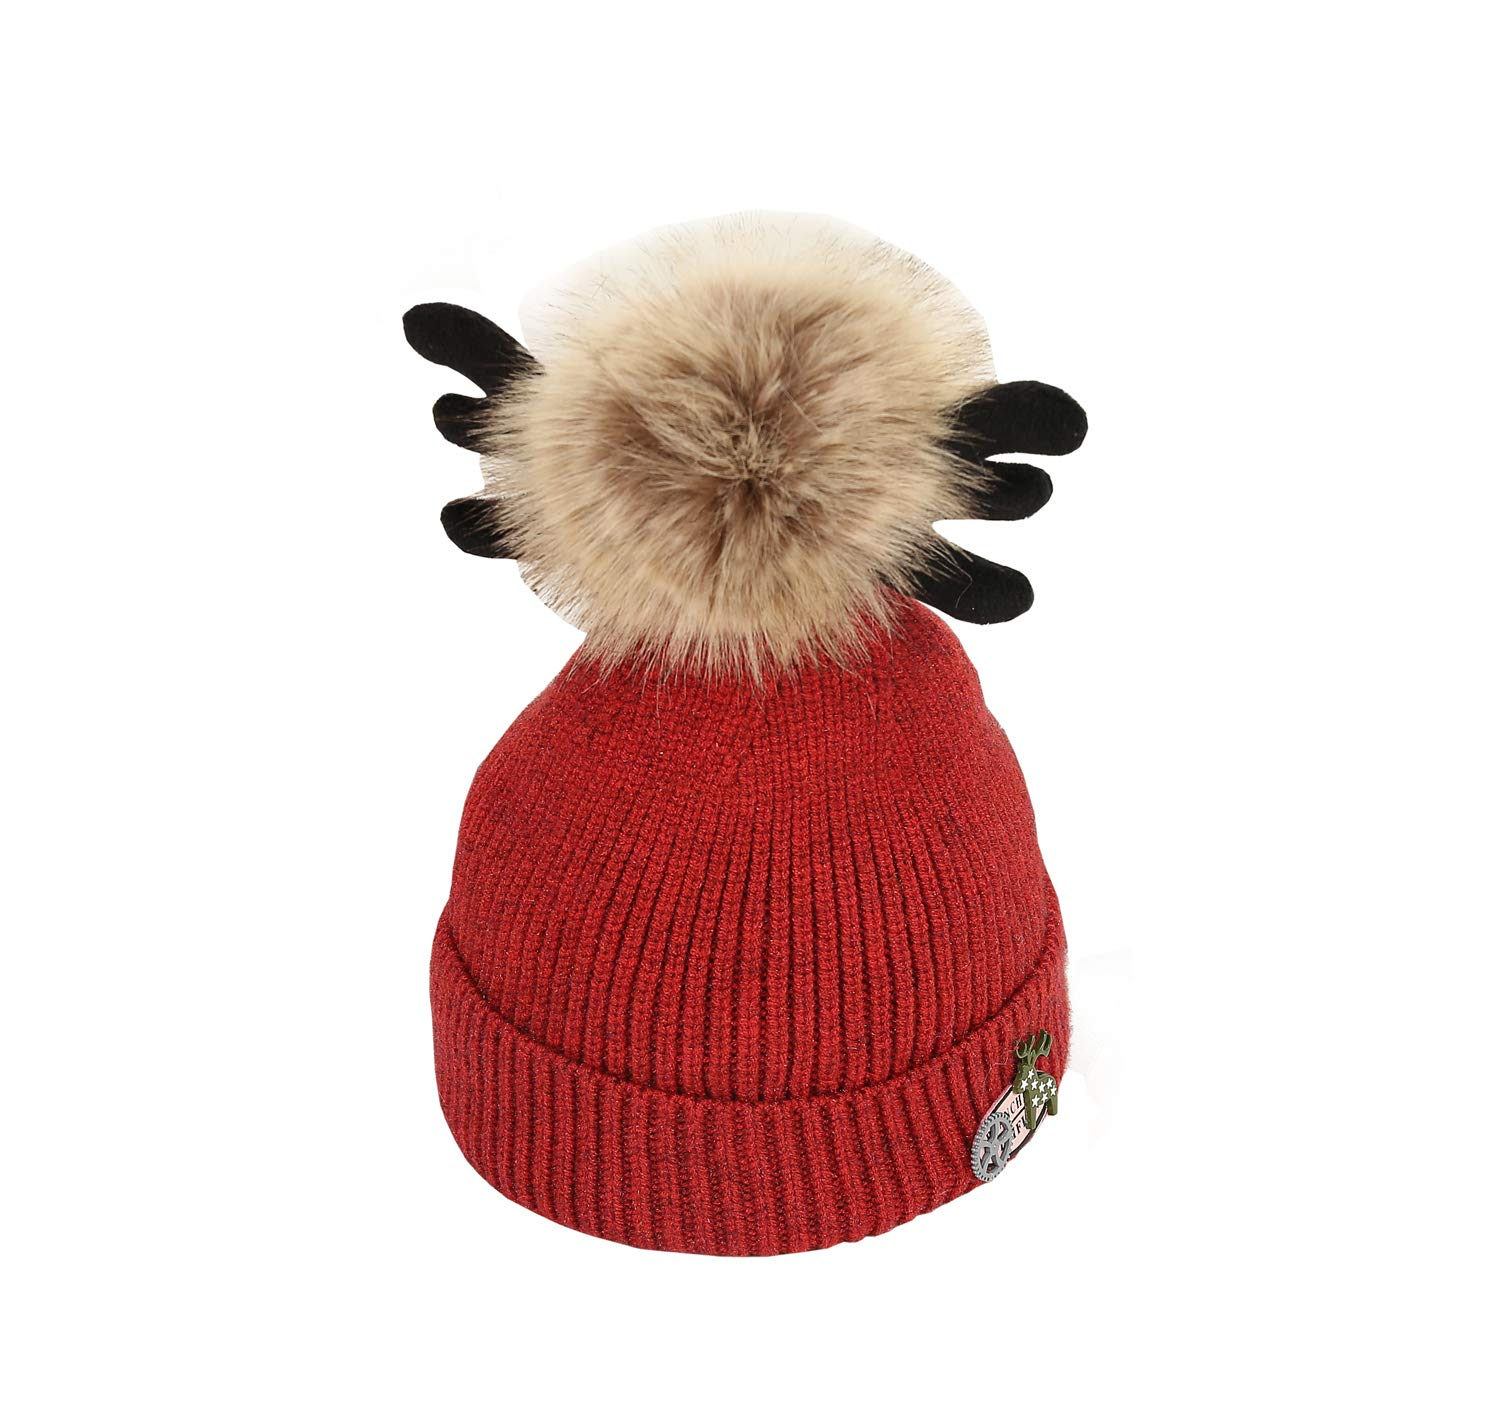 ACVIP Little Girl's Knit Pom Reindeer Antlers Winter Skull Cap (red) by ACVIP (Image #1)